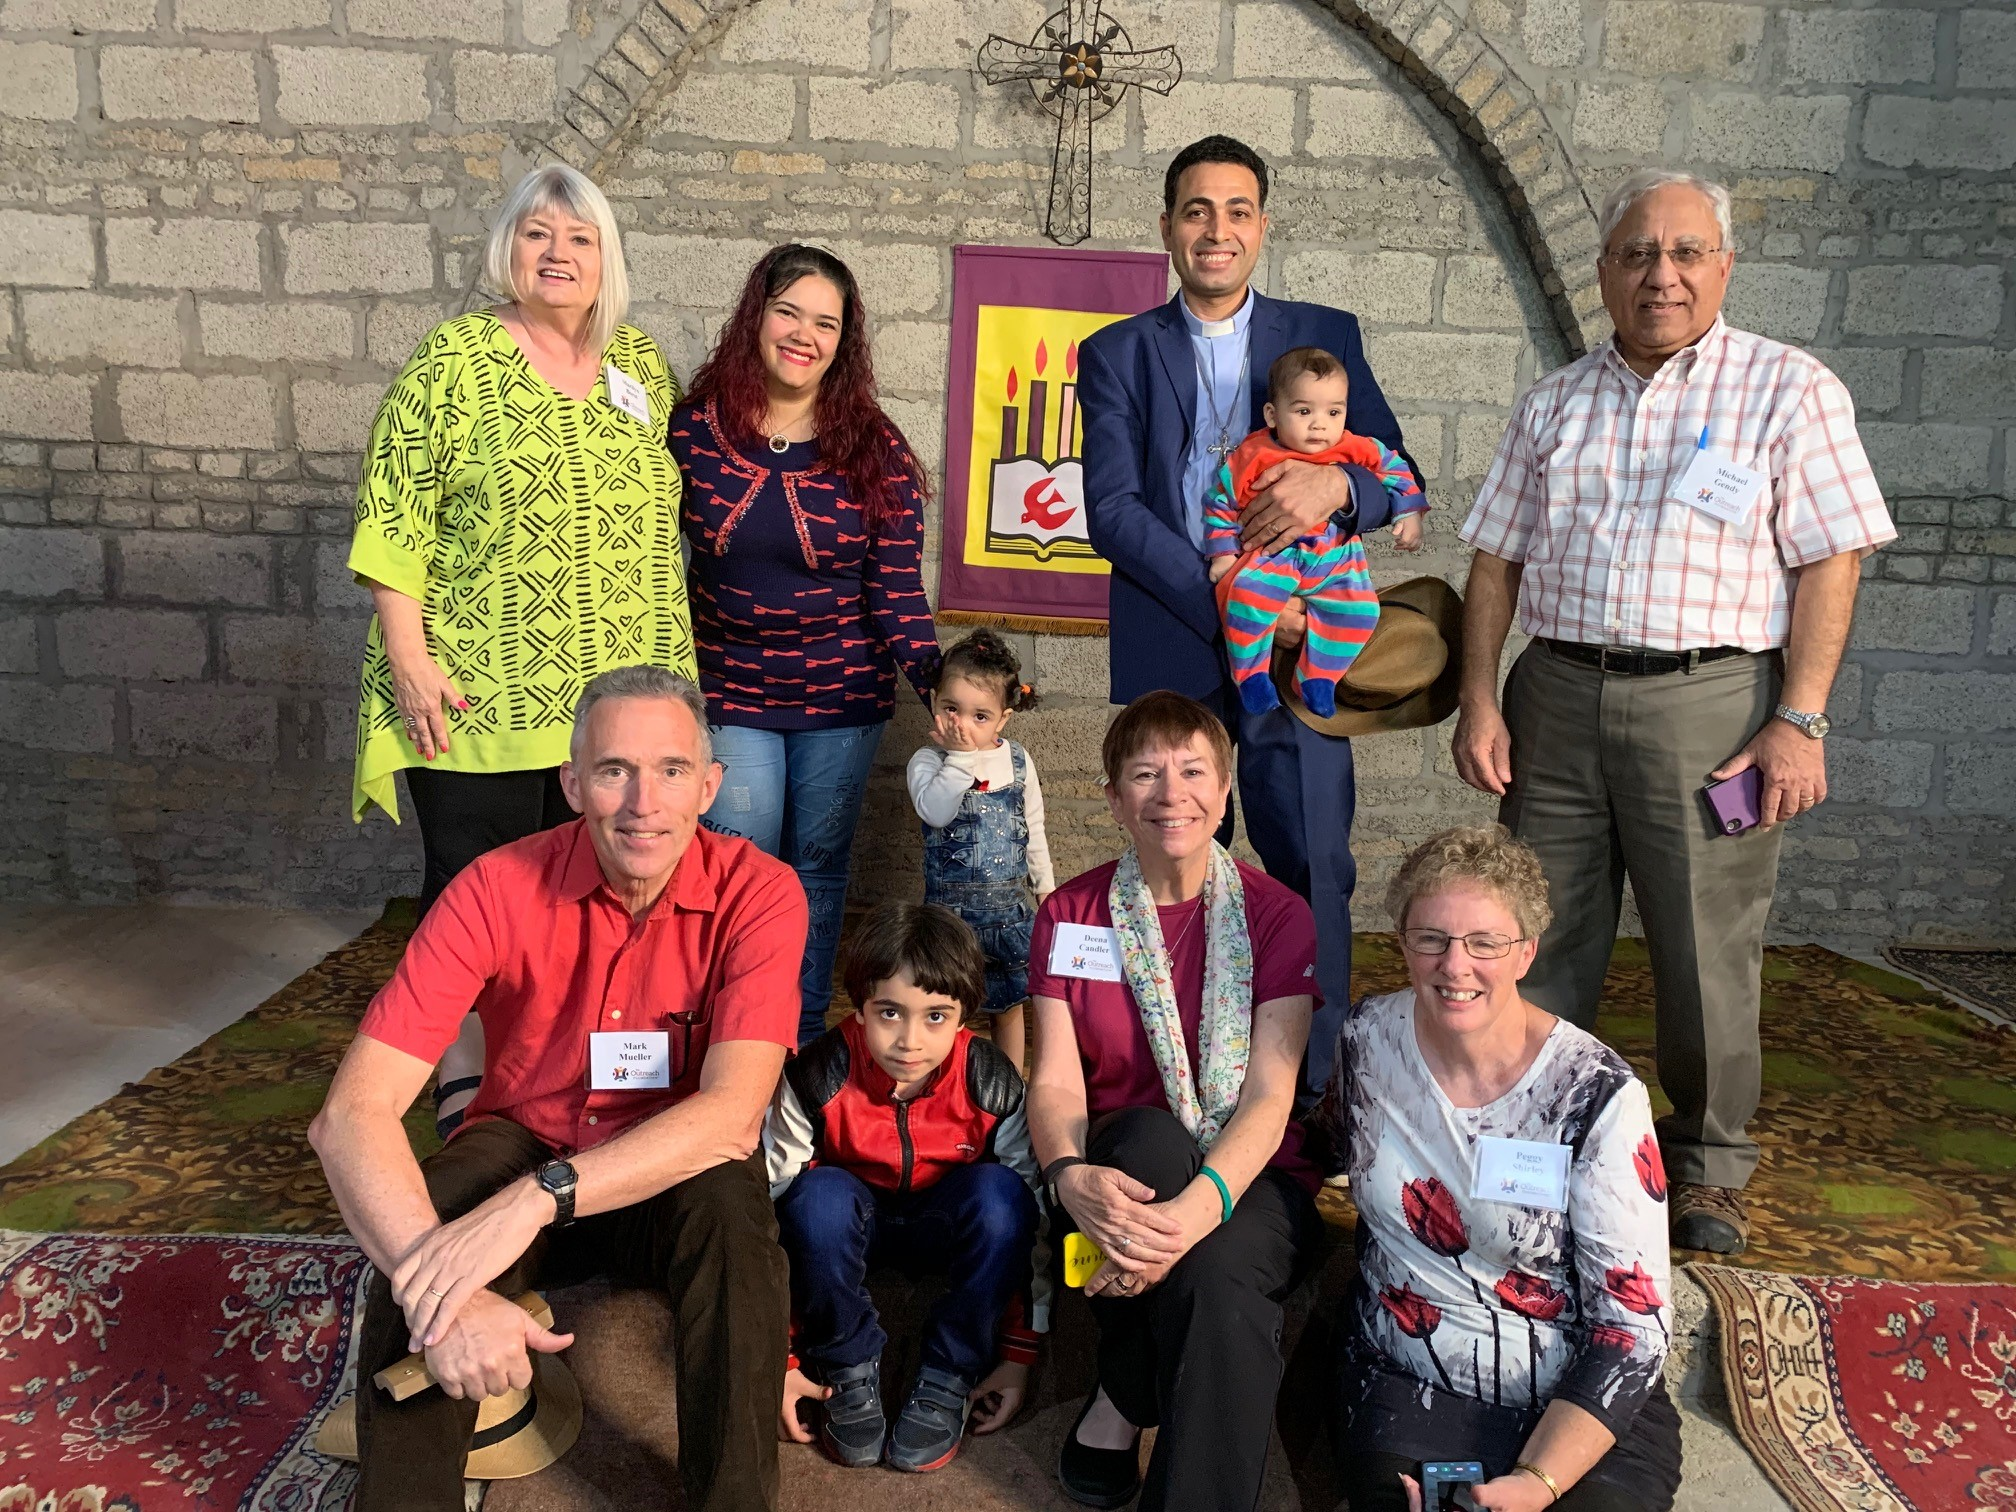 5 members of the Outreach Foundation team (Marilyn Borst, Michael Gendy, Mark Mueller, Deena Candler, Peggy Shirley) made the 90 minute drive, south of Luxor, to Adaima to see Rev Shenouda Girgis and his family (seen here)